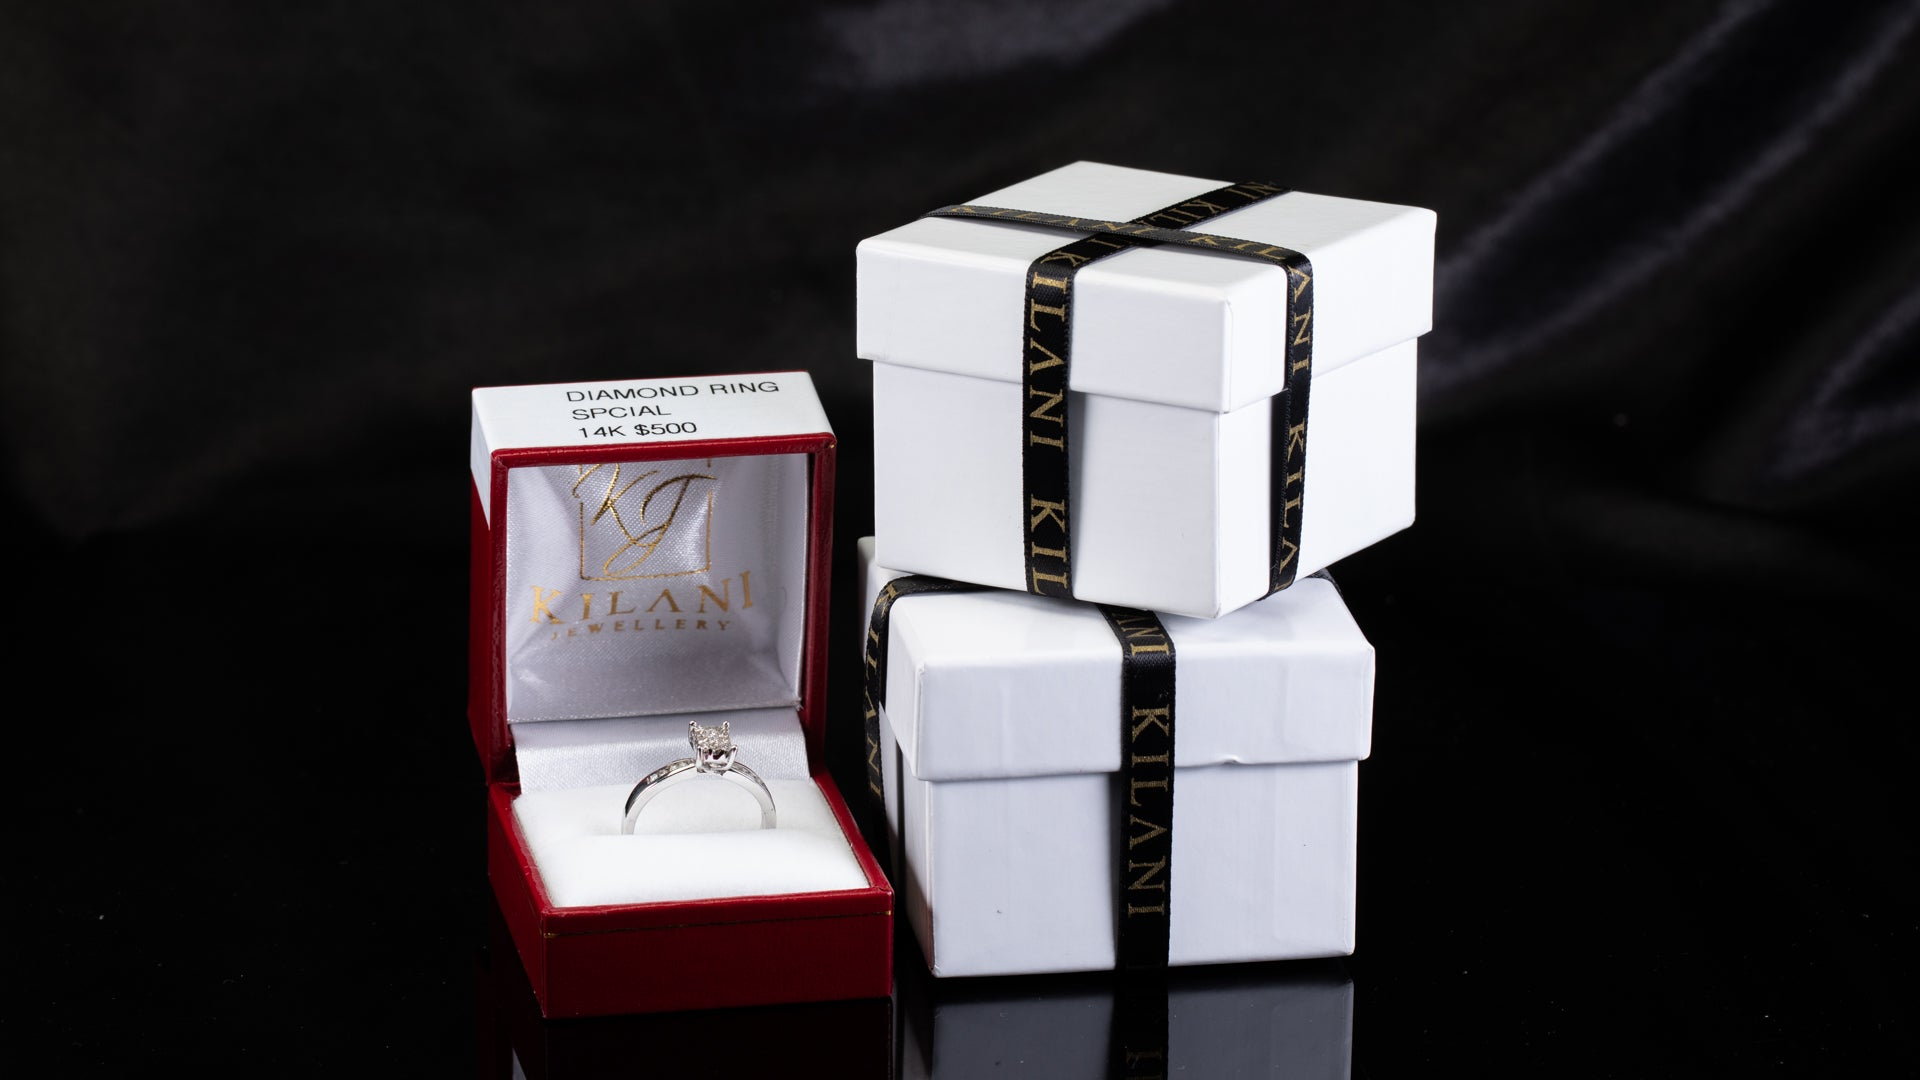 [SPECIAL] 14k White Gold Ladies Promise Diamond Ring